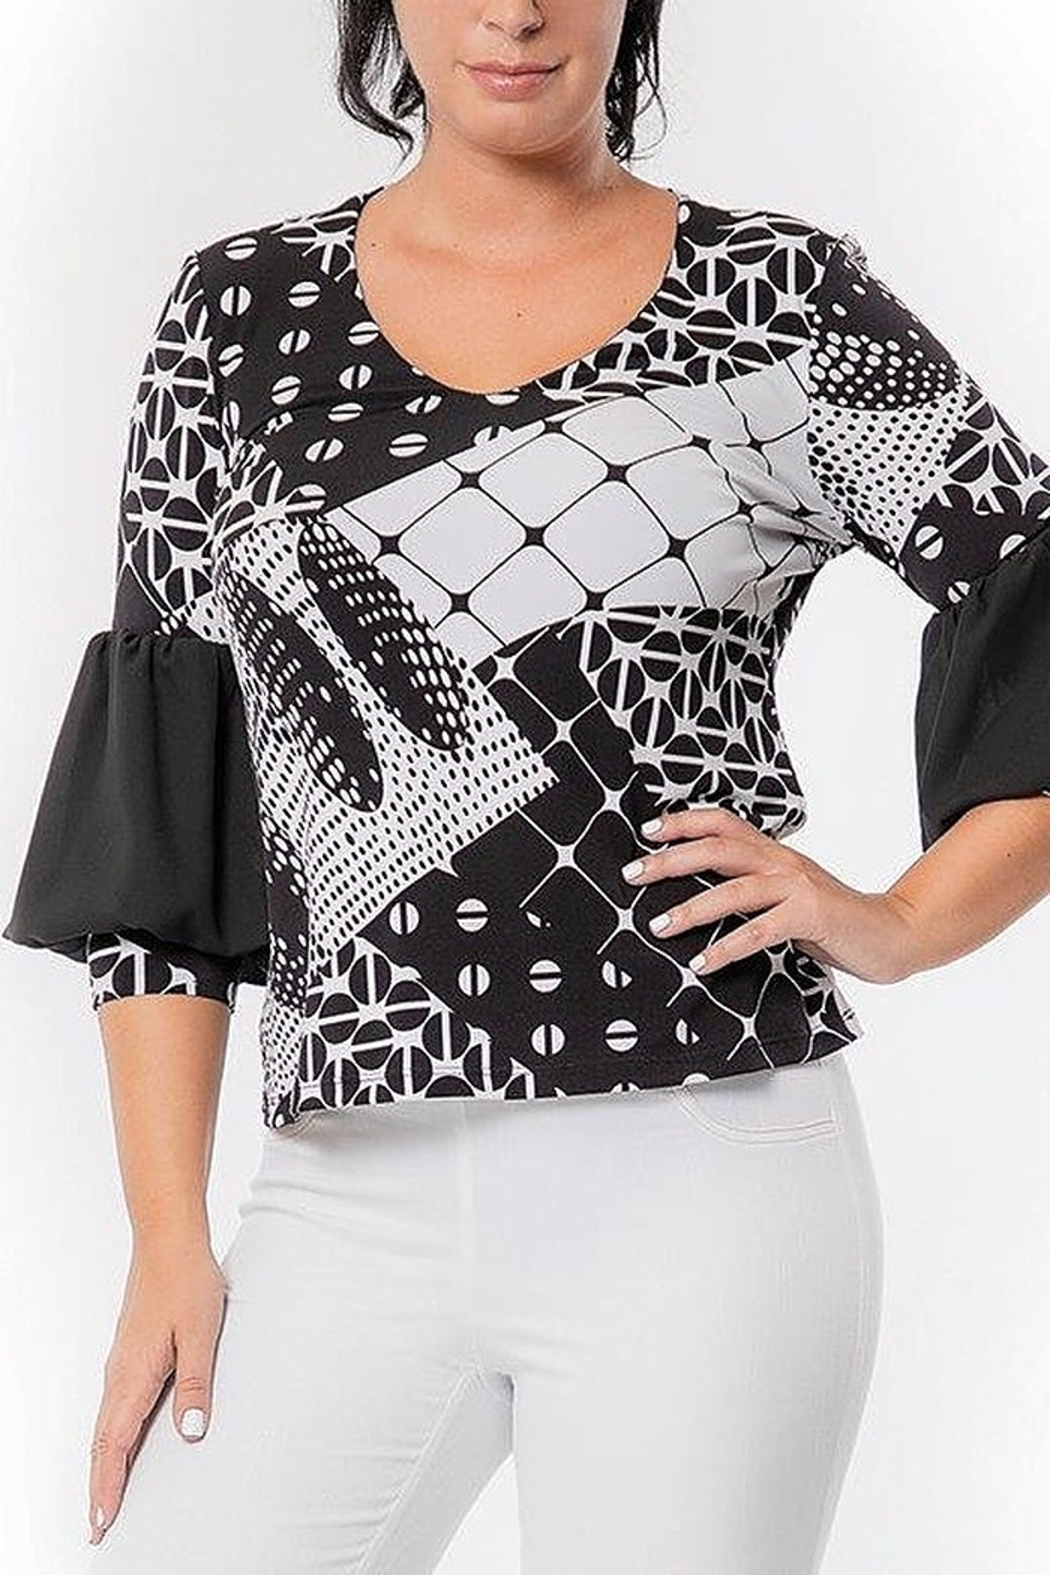 Bali Corp. Puff Sleeve Black & White Blouse - Front Cropped Image